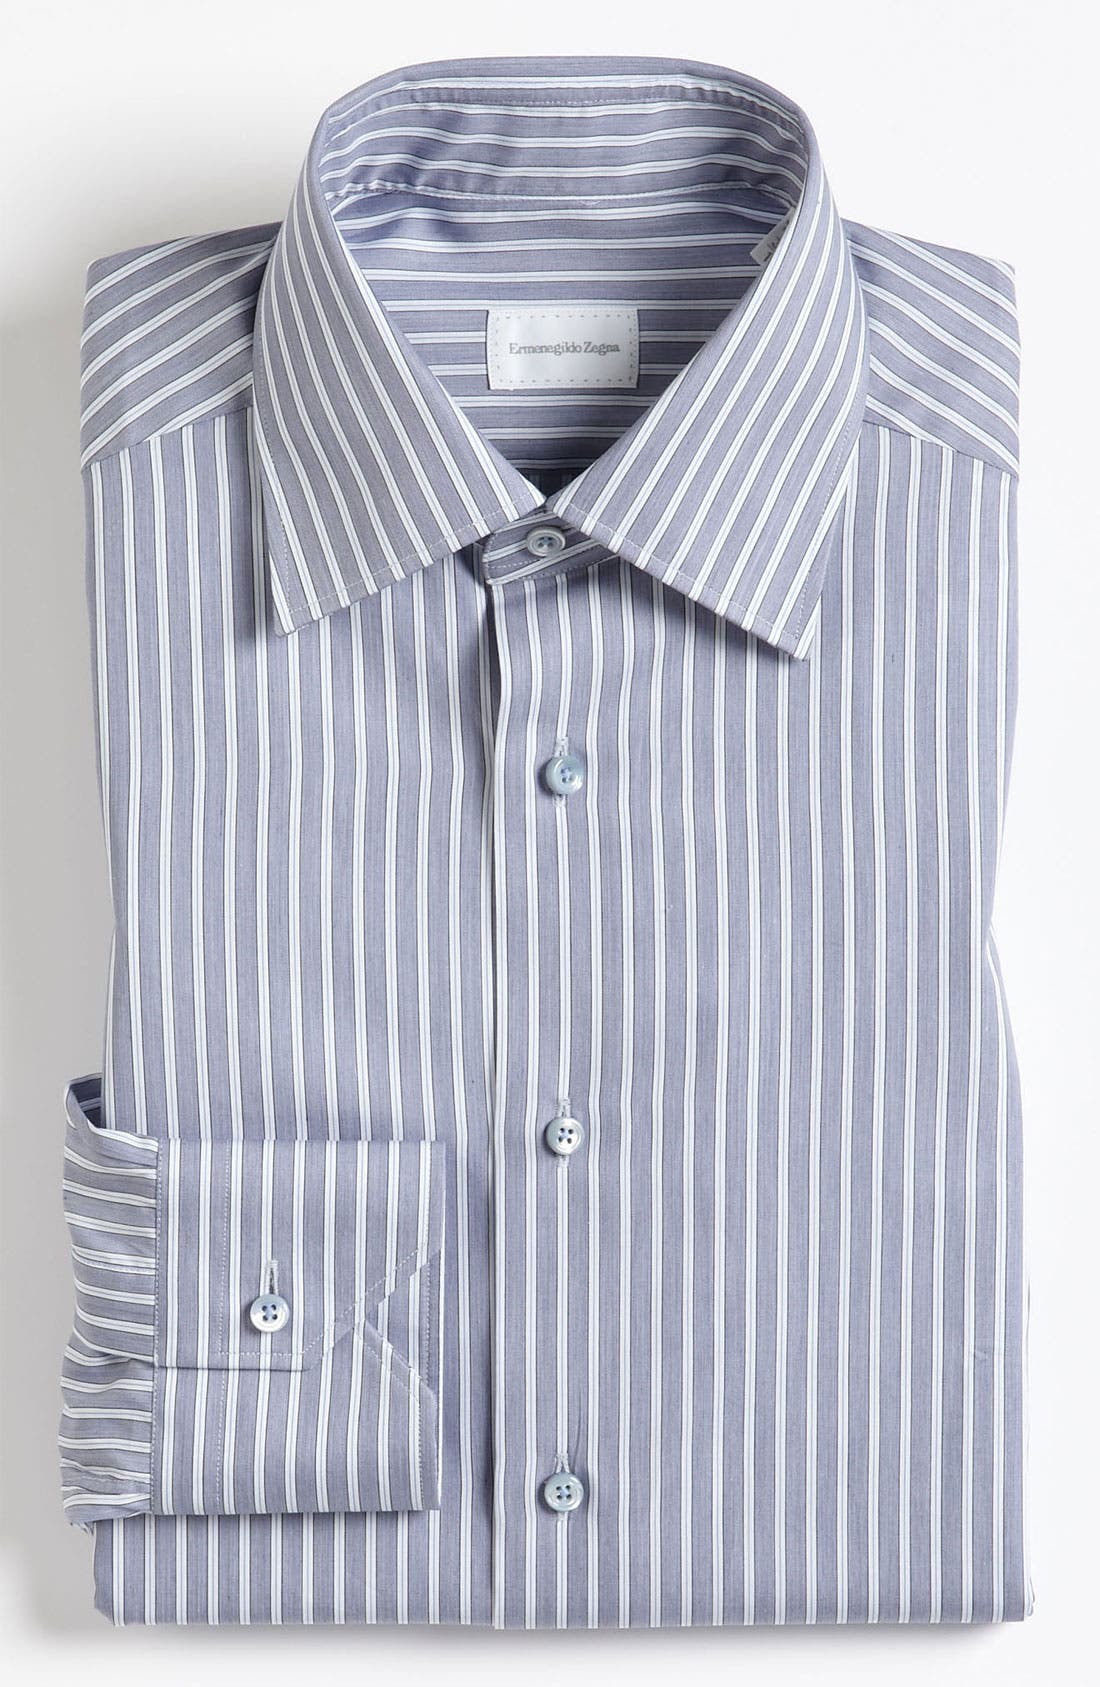 Alternate Image 1 Selected - Ermenegildo Zegna Tailored Fit Dress Shirt